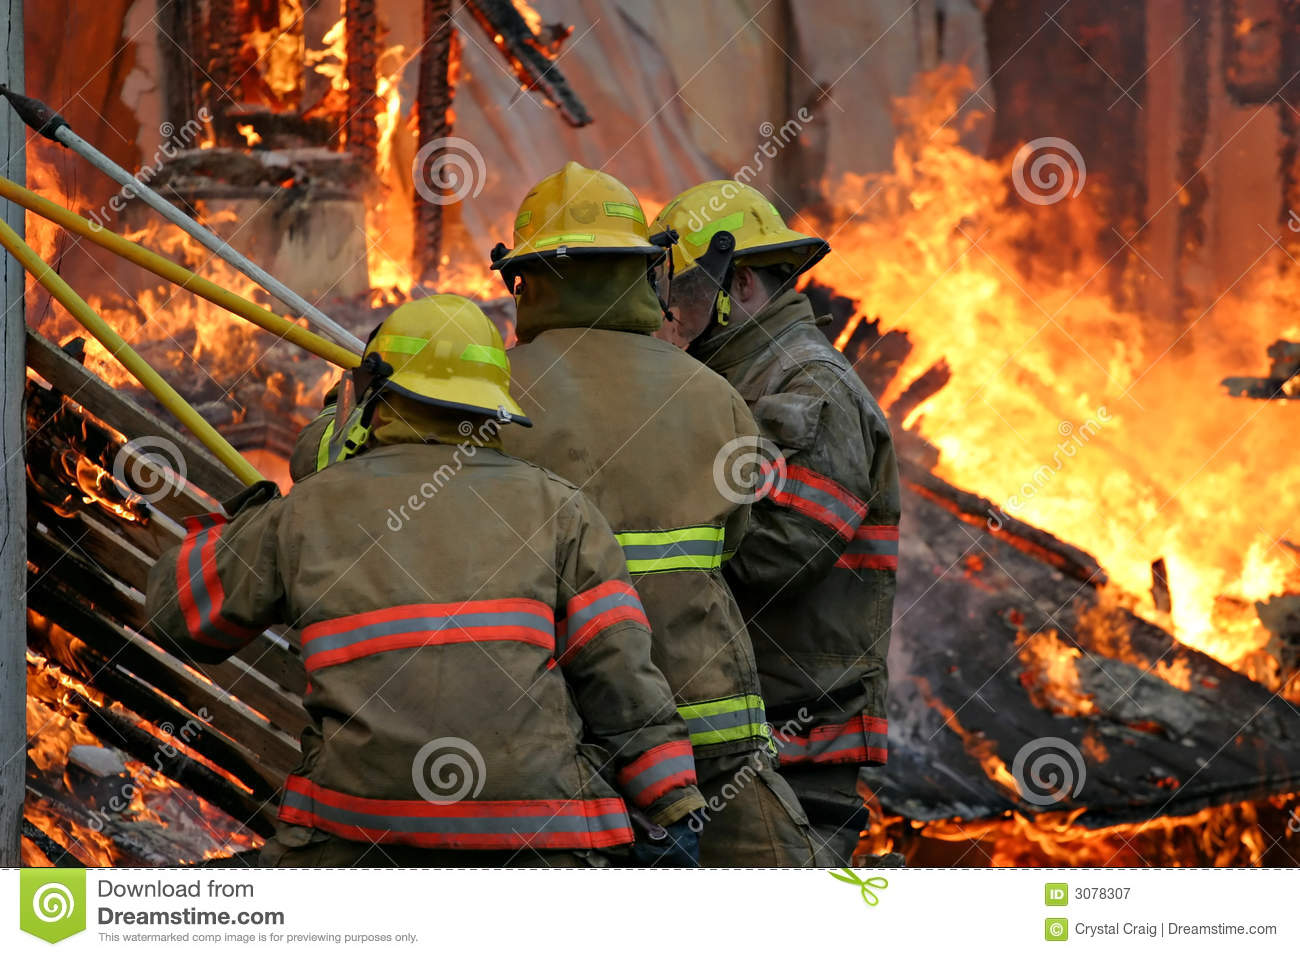 Firefighters Inside the Fire